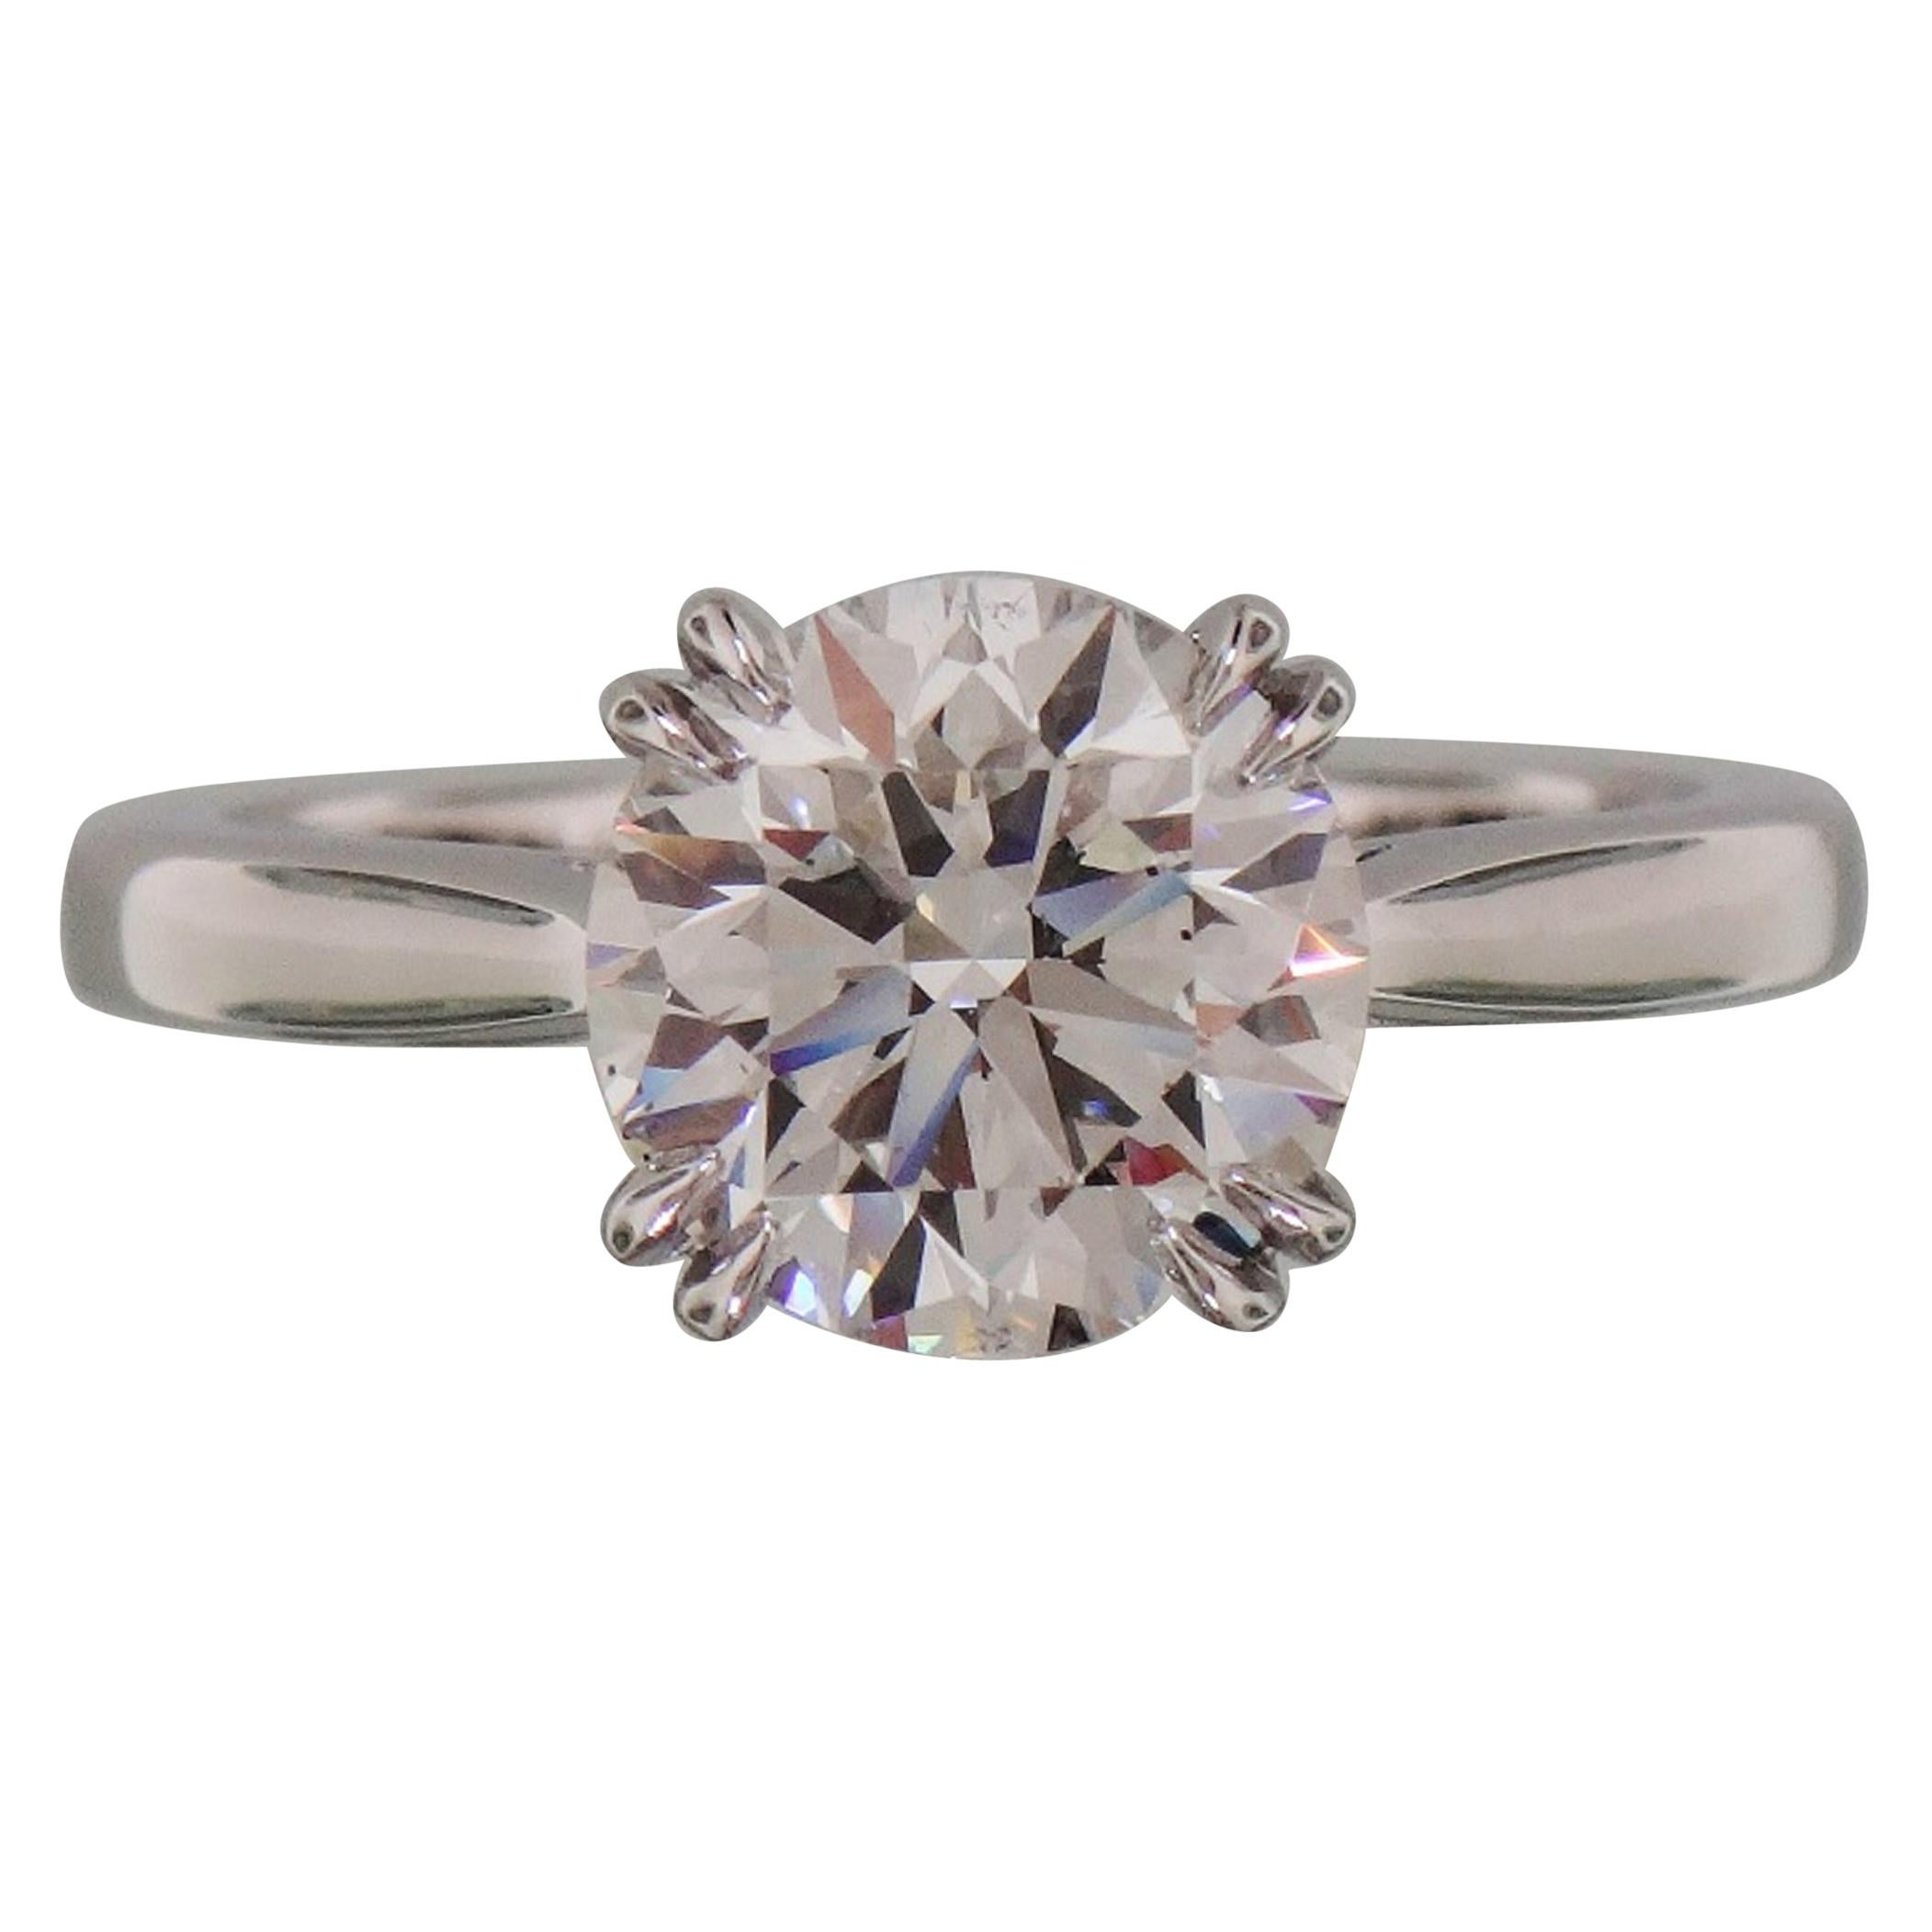 FLAWLESS GIA Certified 2 Carat Round Brilliant Cut Platinum Solitaire Ring